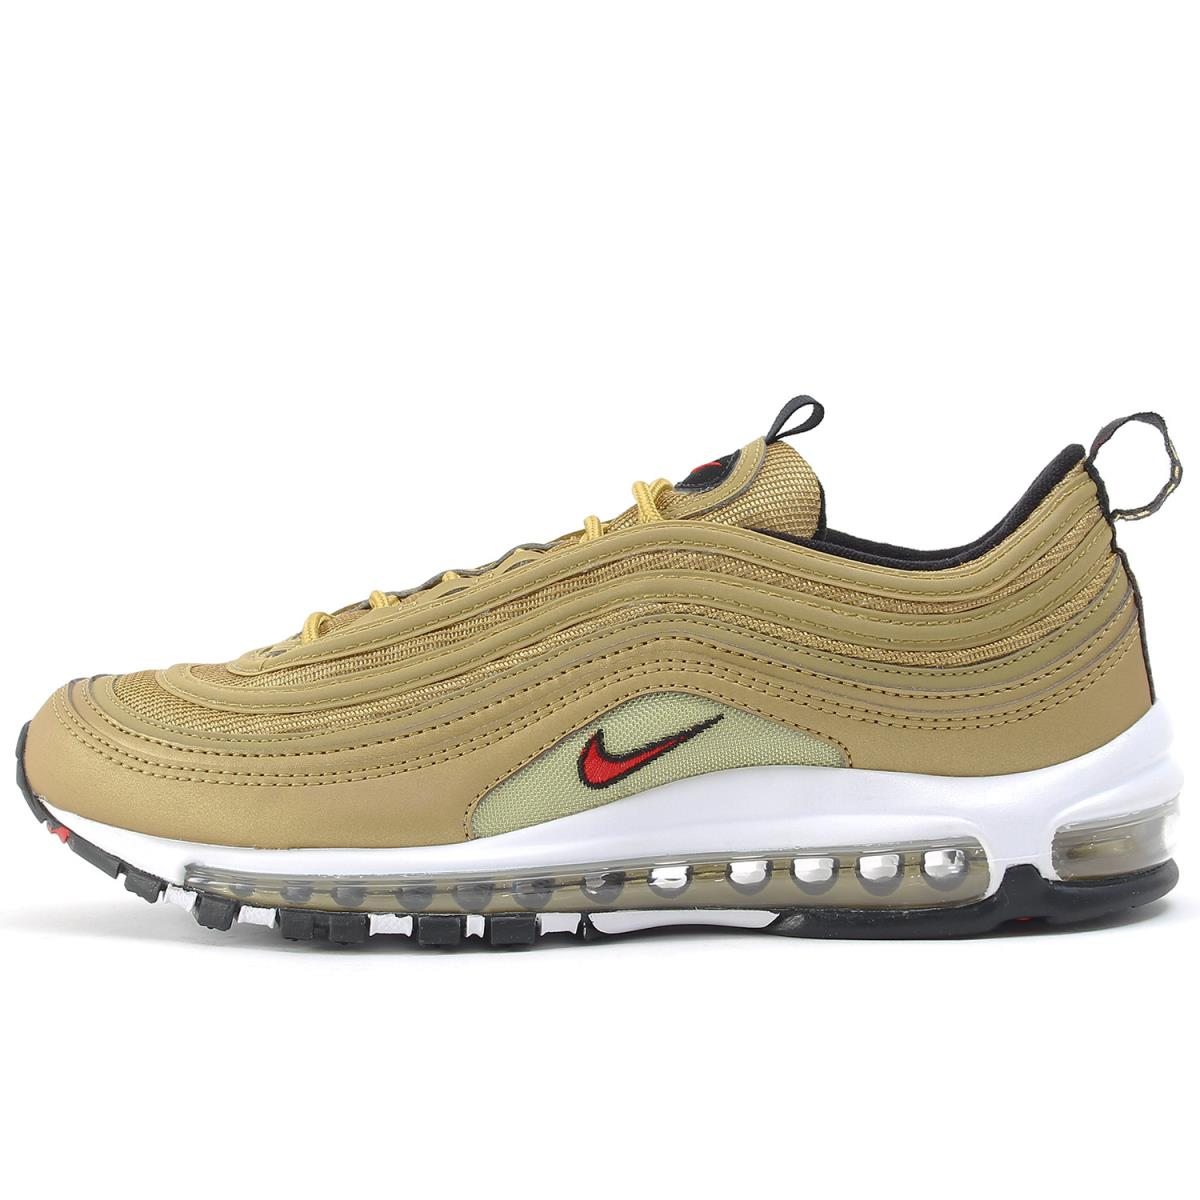 sale retailer dff88 a1095 NIKE (Nike) AIR MAX 97 OG QS METALLIC GOLD (884,421-700) metallic gold  US8.5(26.5cm)